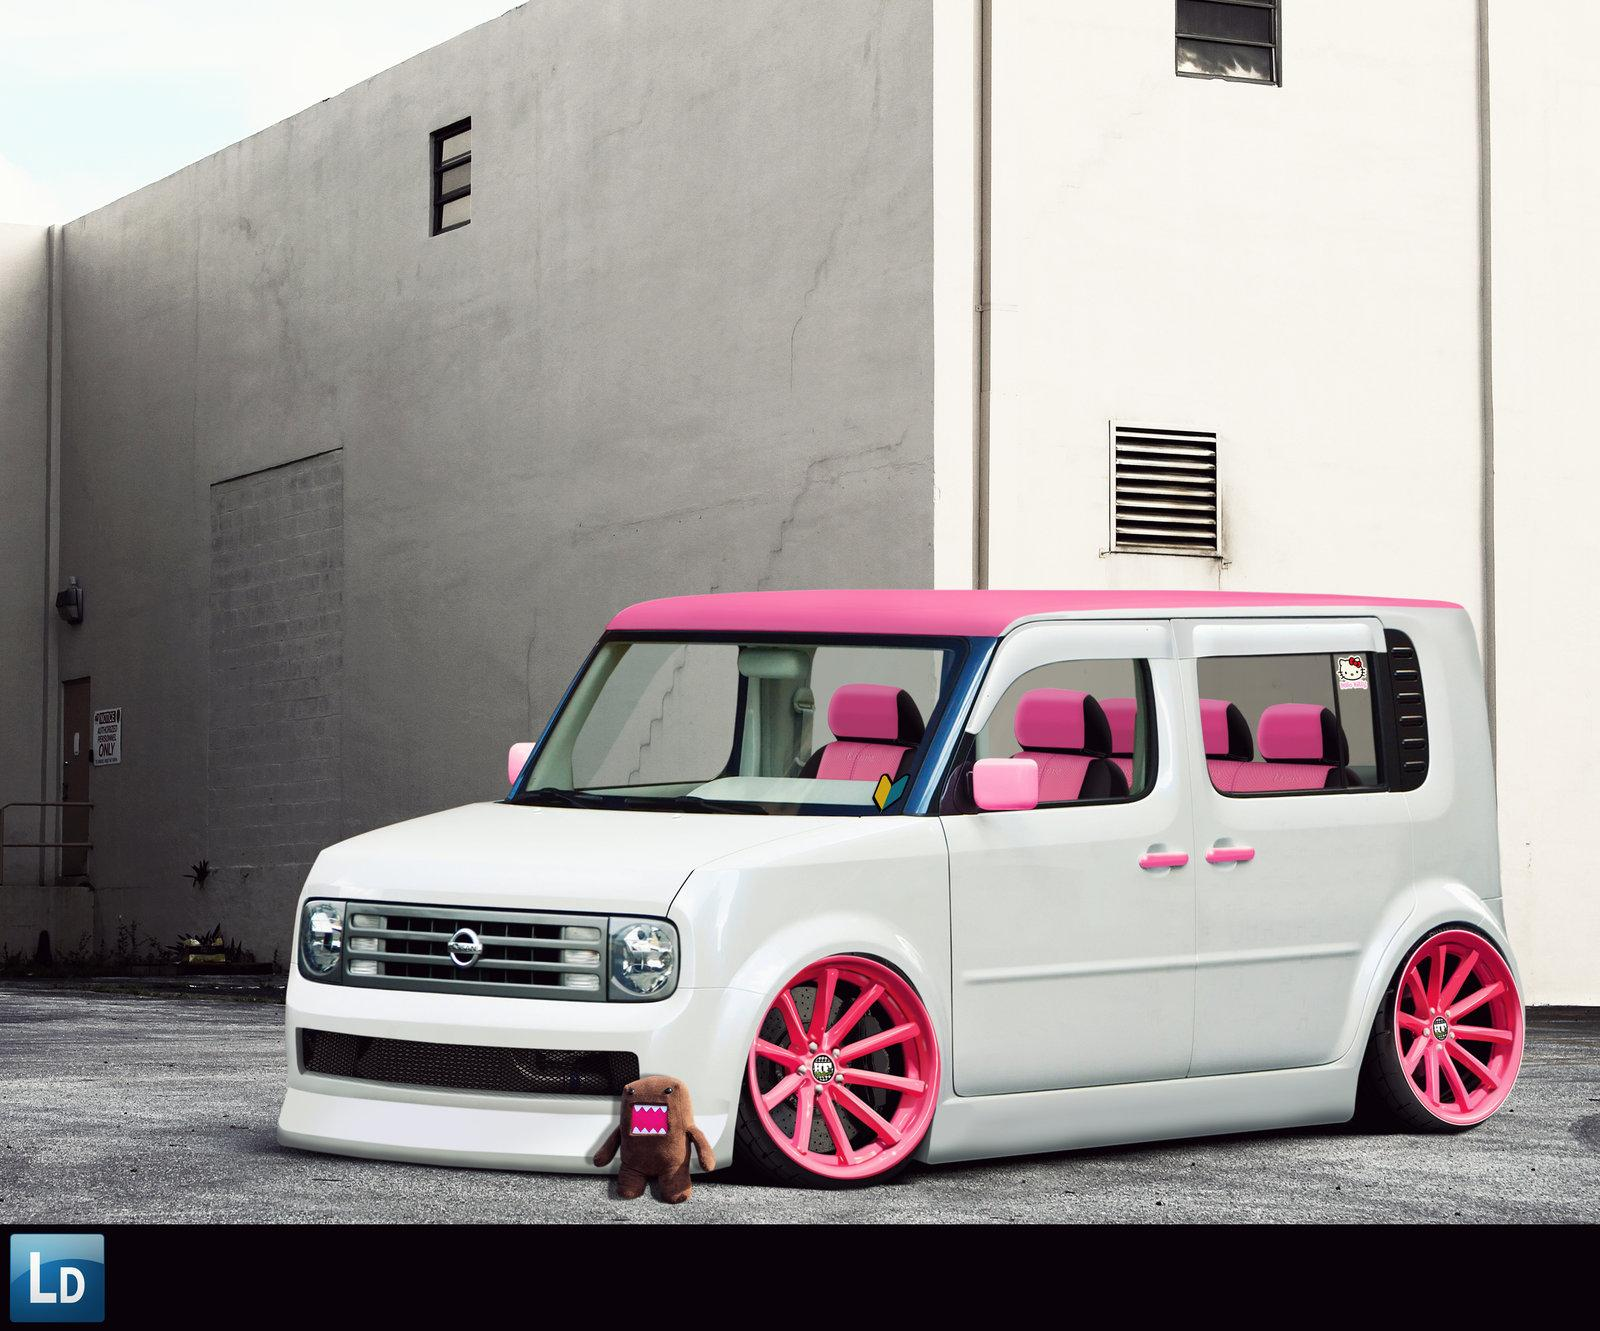 2011 nissan cube information and photos zombiedrive. Black Bedroom Furniture Sets. Home Design Ideas